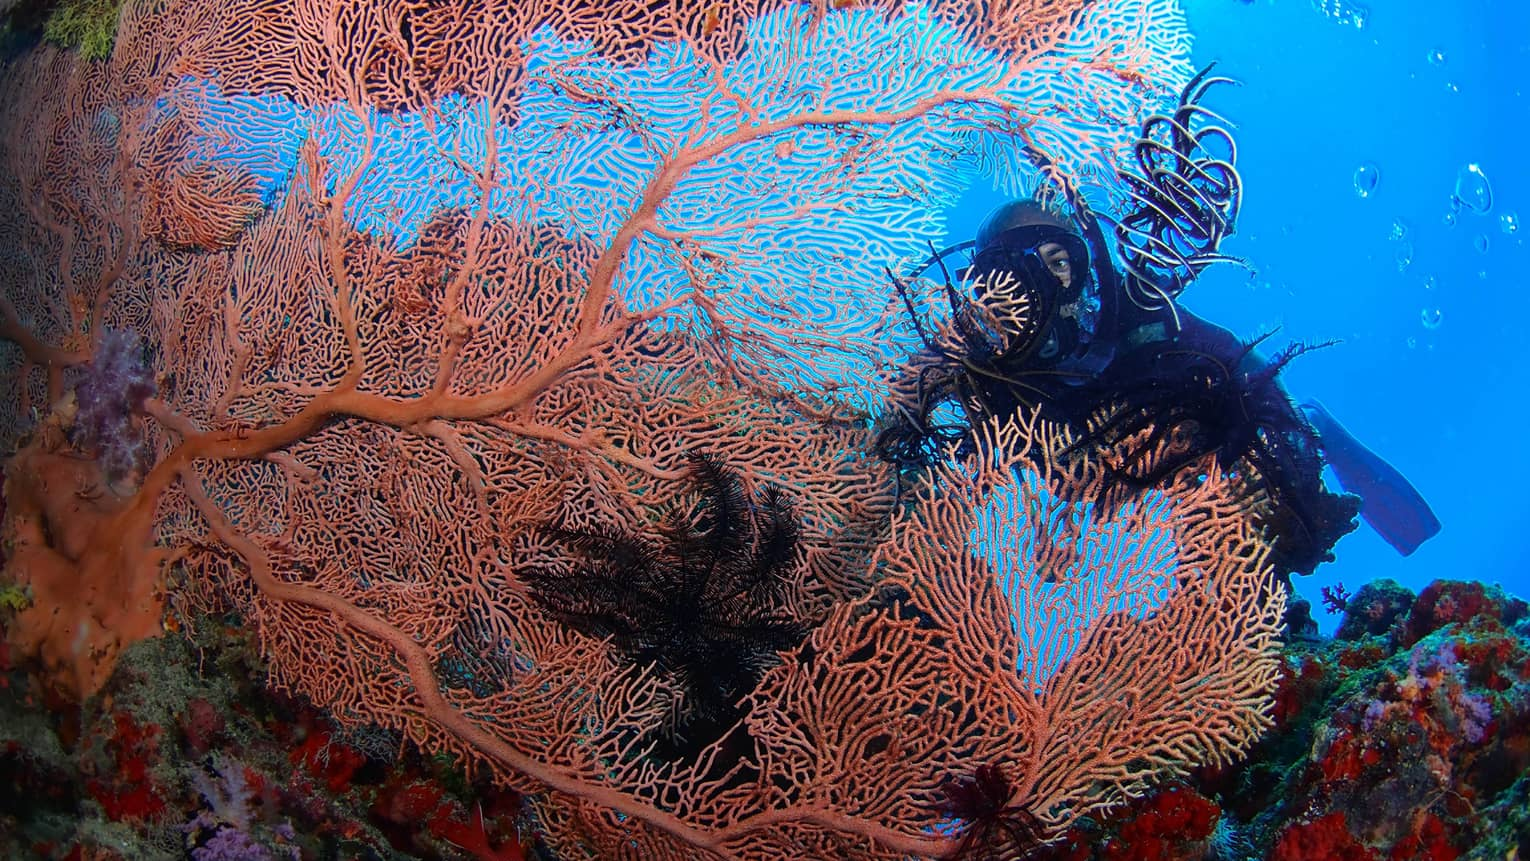 Scuba diver behind large, colourful coral in lagoon